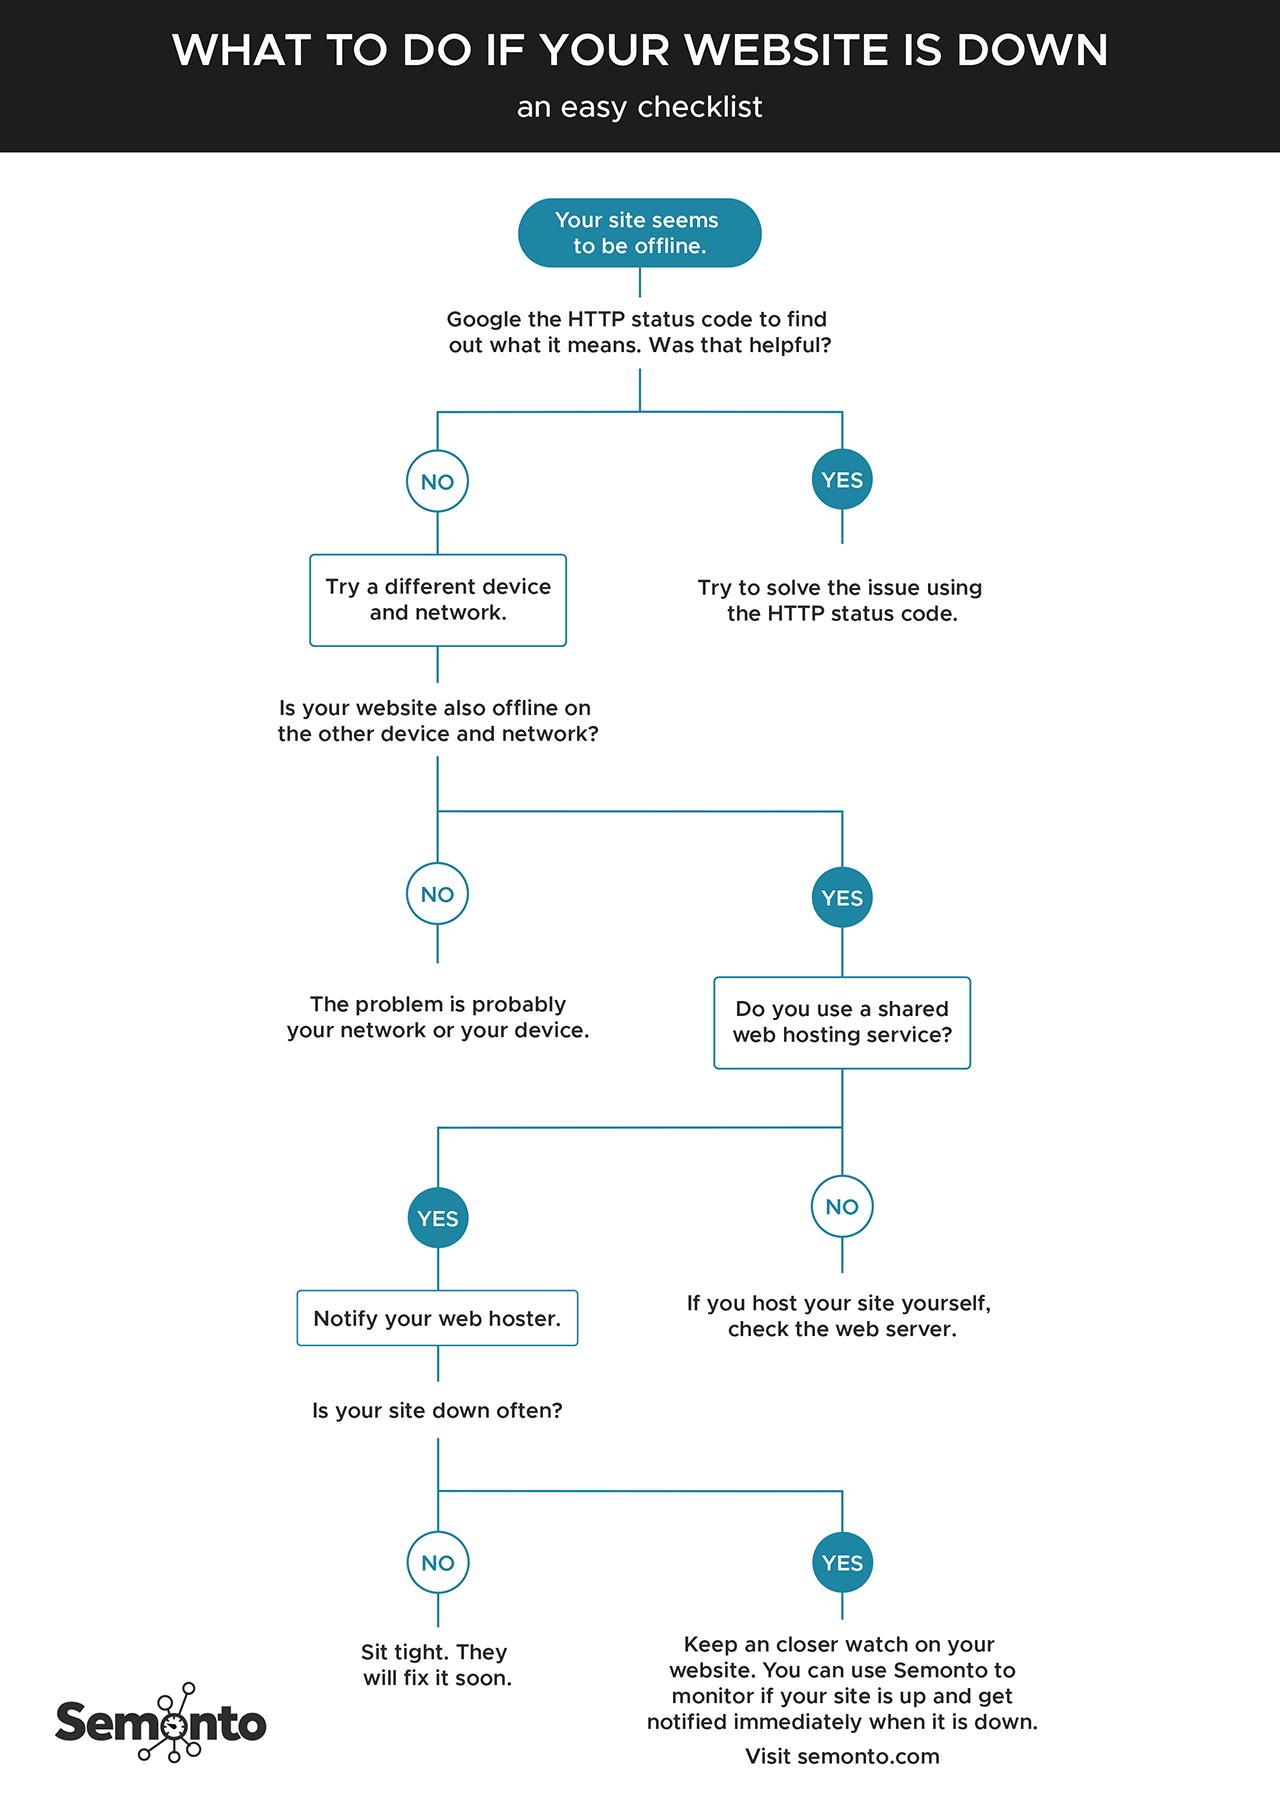 Flow chart that depicts an easy checklists when your site is down